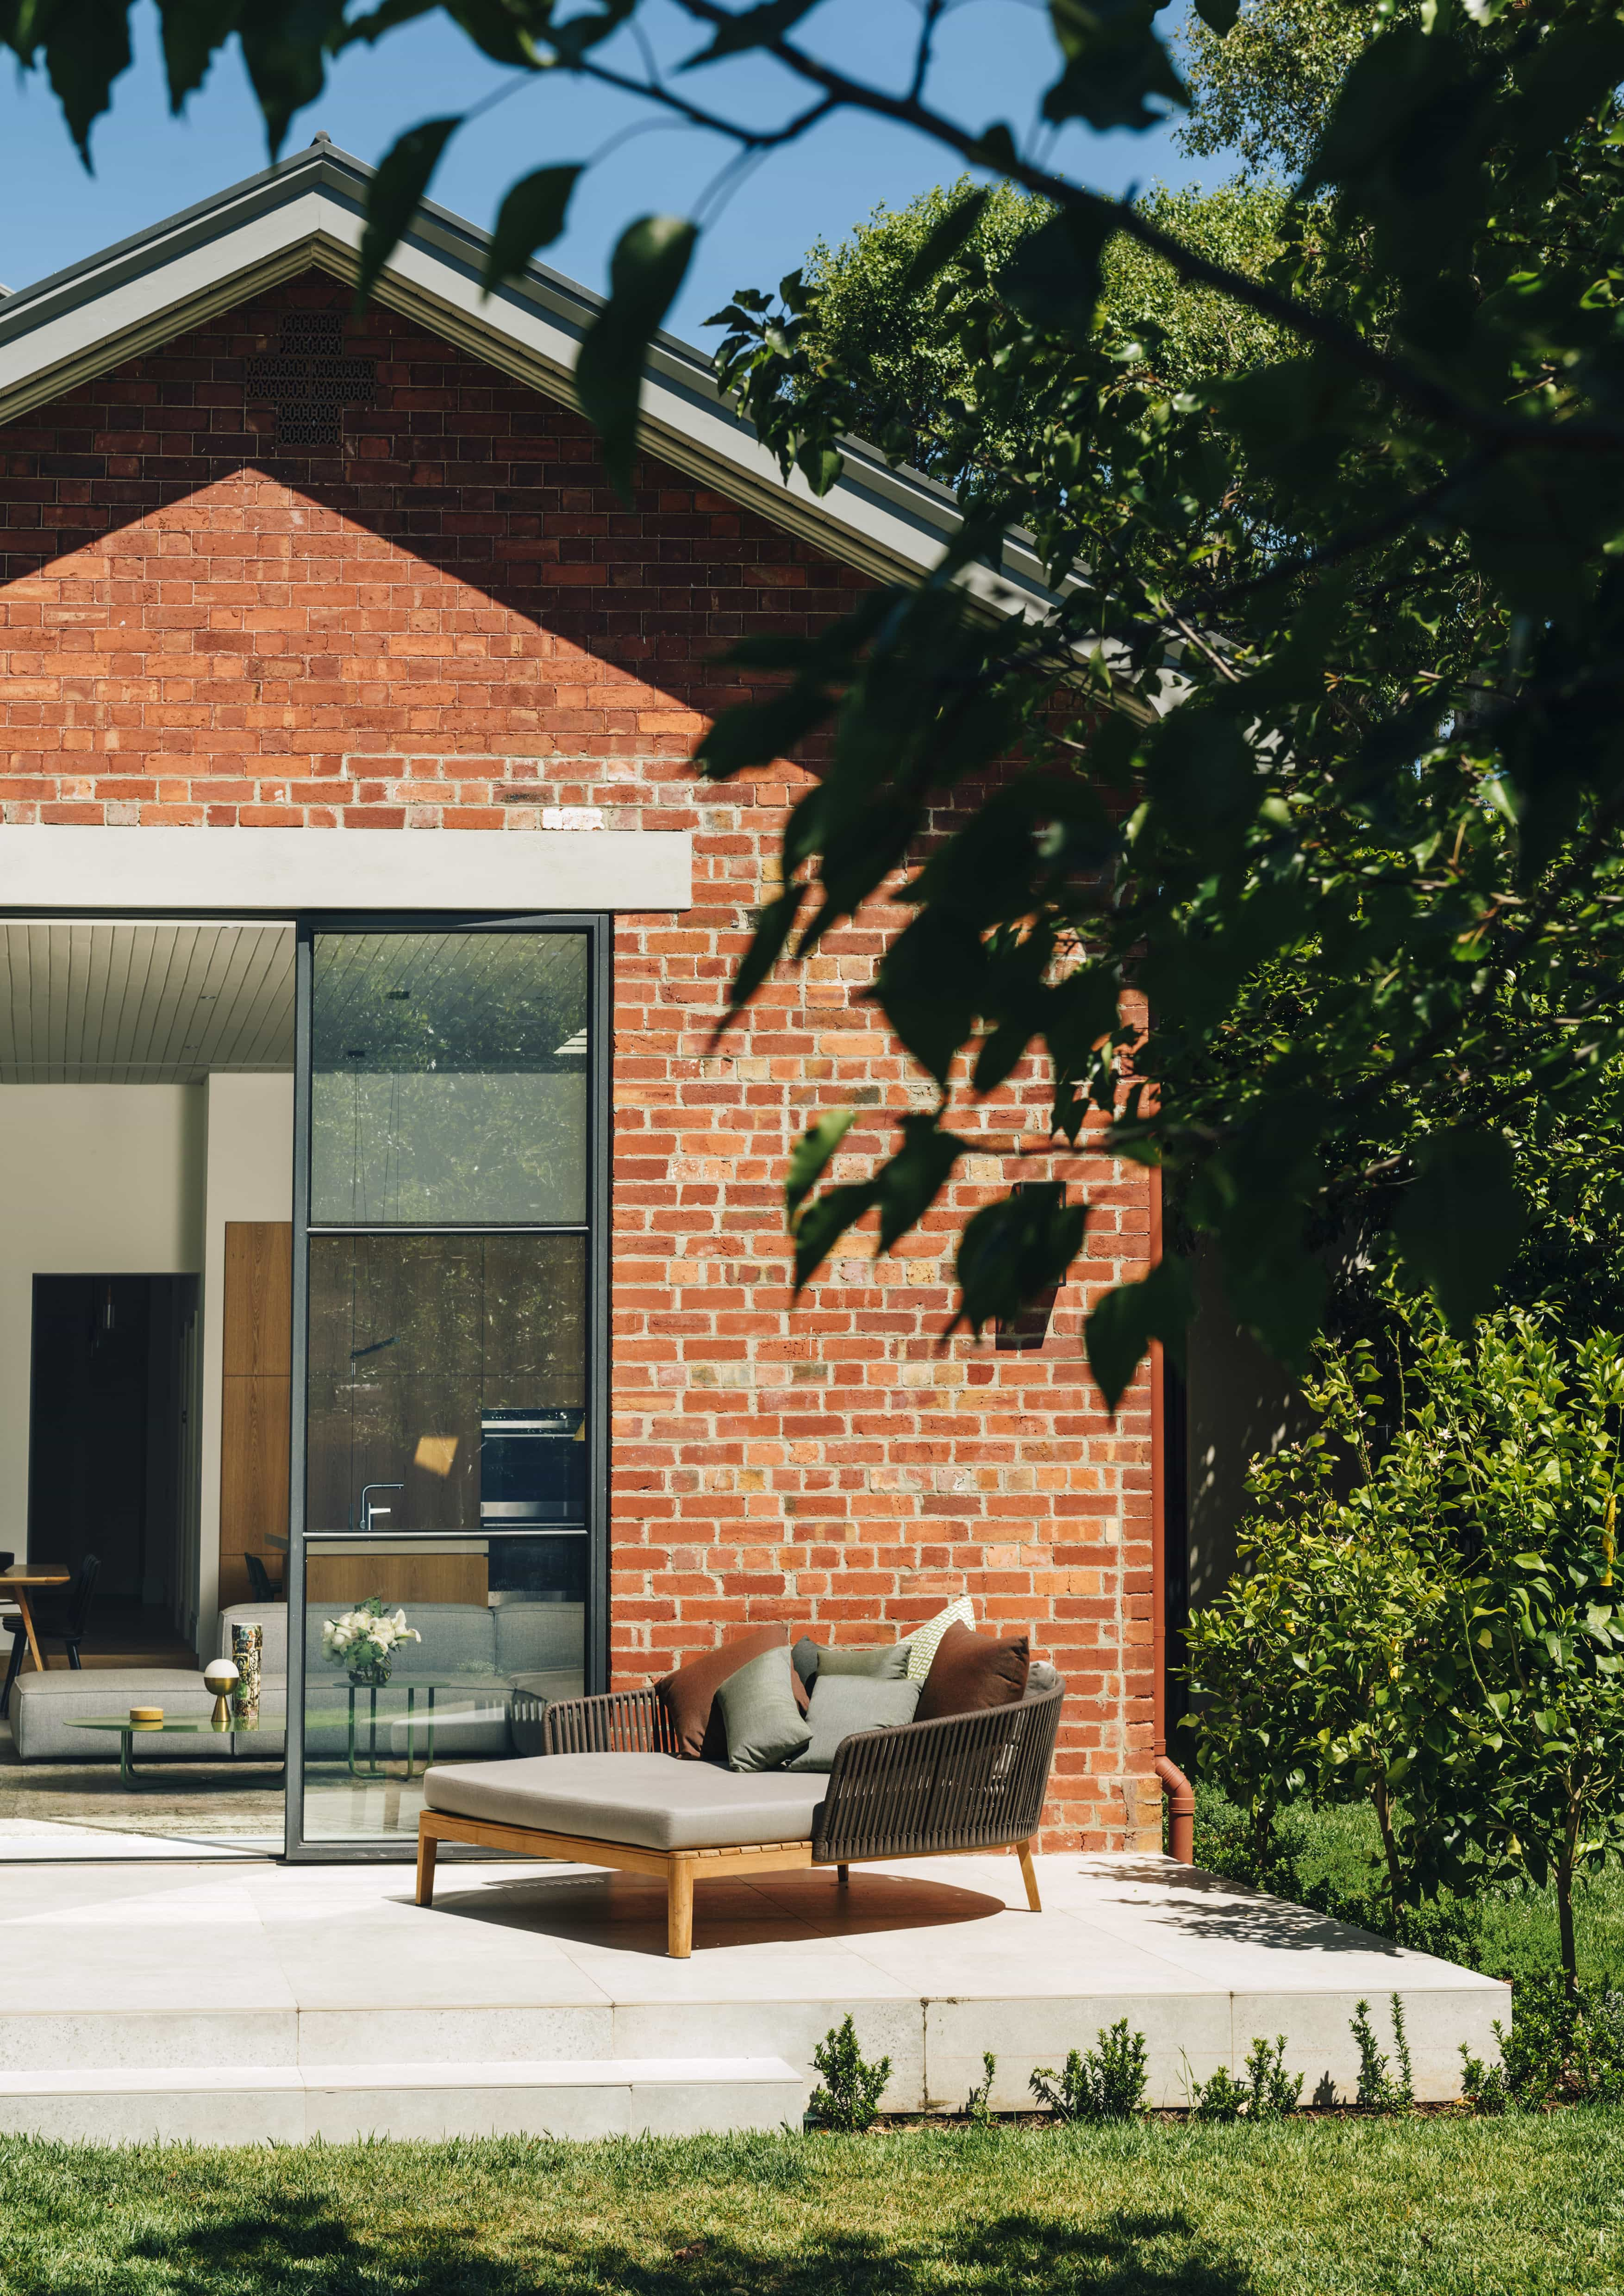 No Ordinary Heritage Renovation, The Project Is A Testament